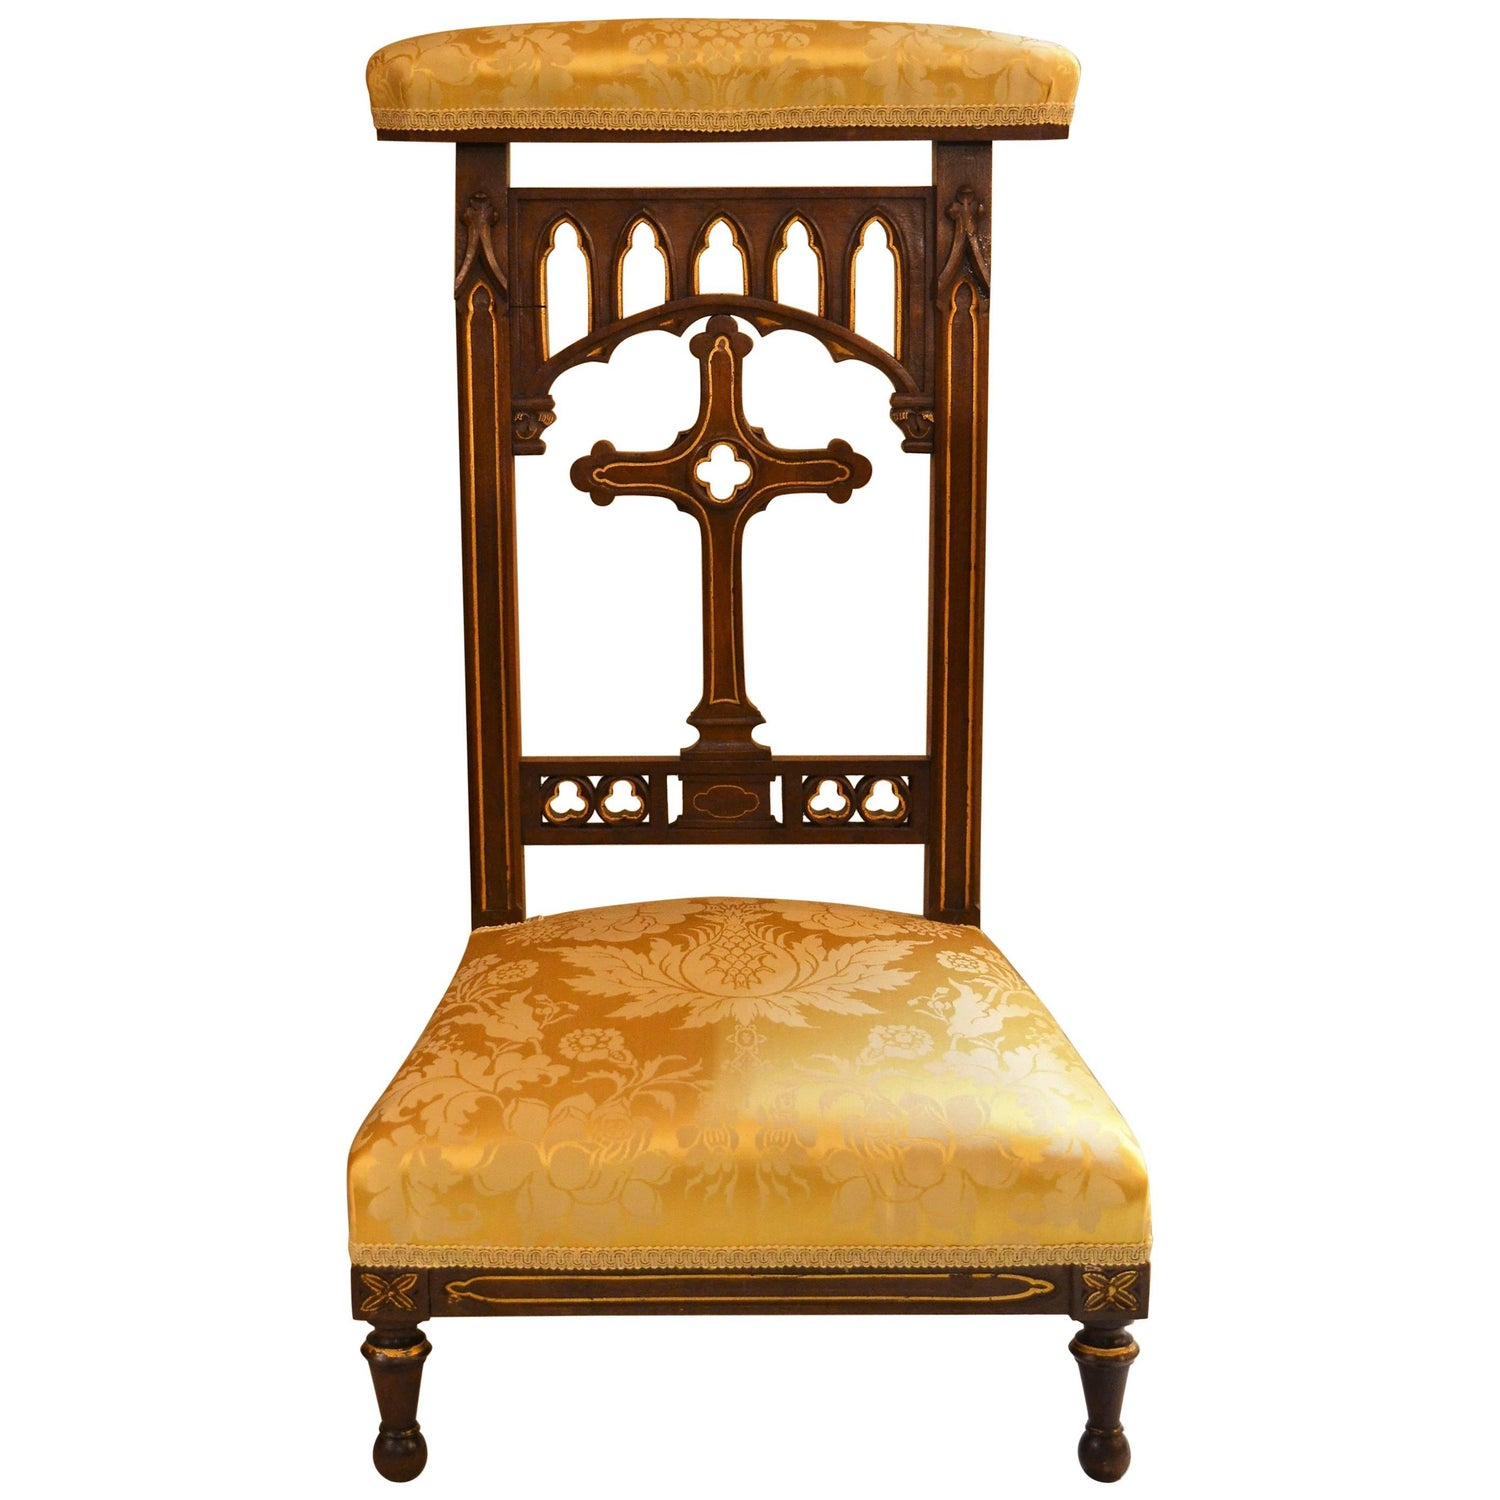 Antique French Walnut Prie Dieu Prayer Chair - Antique Metamorphosis Prie-Dieu Prayer Chair For Sale At 1stdibs